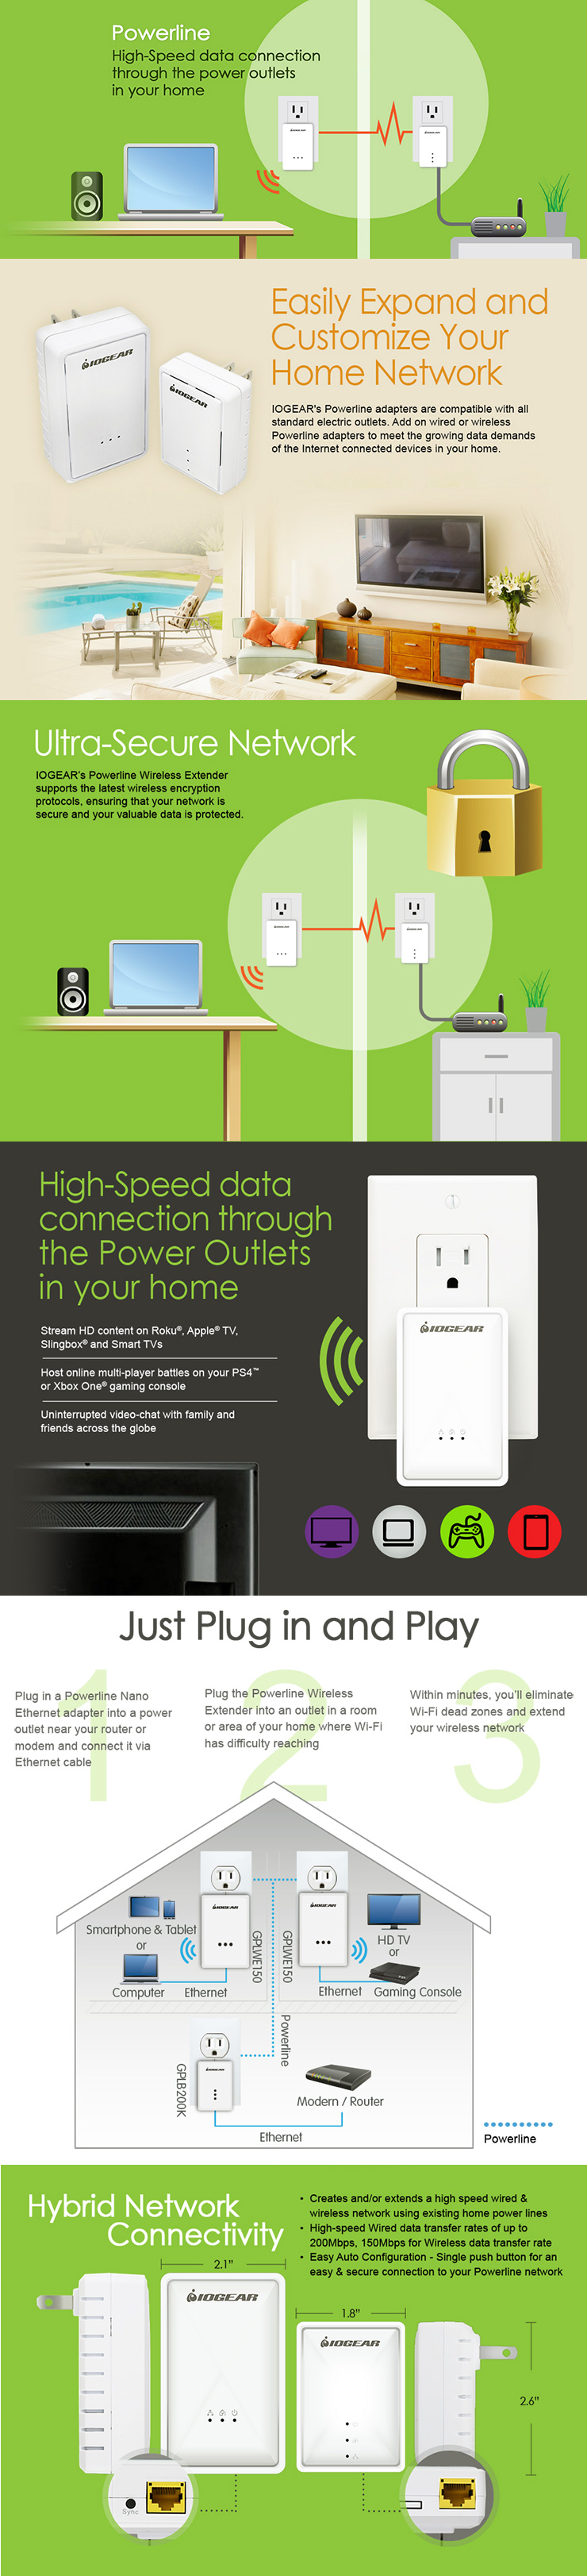 medium resolution of powerline creates a seamless home network without any additional cabling providing fast and reliable wi fi access in every corner of your home